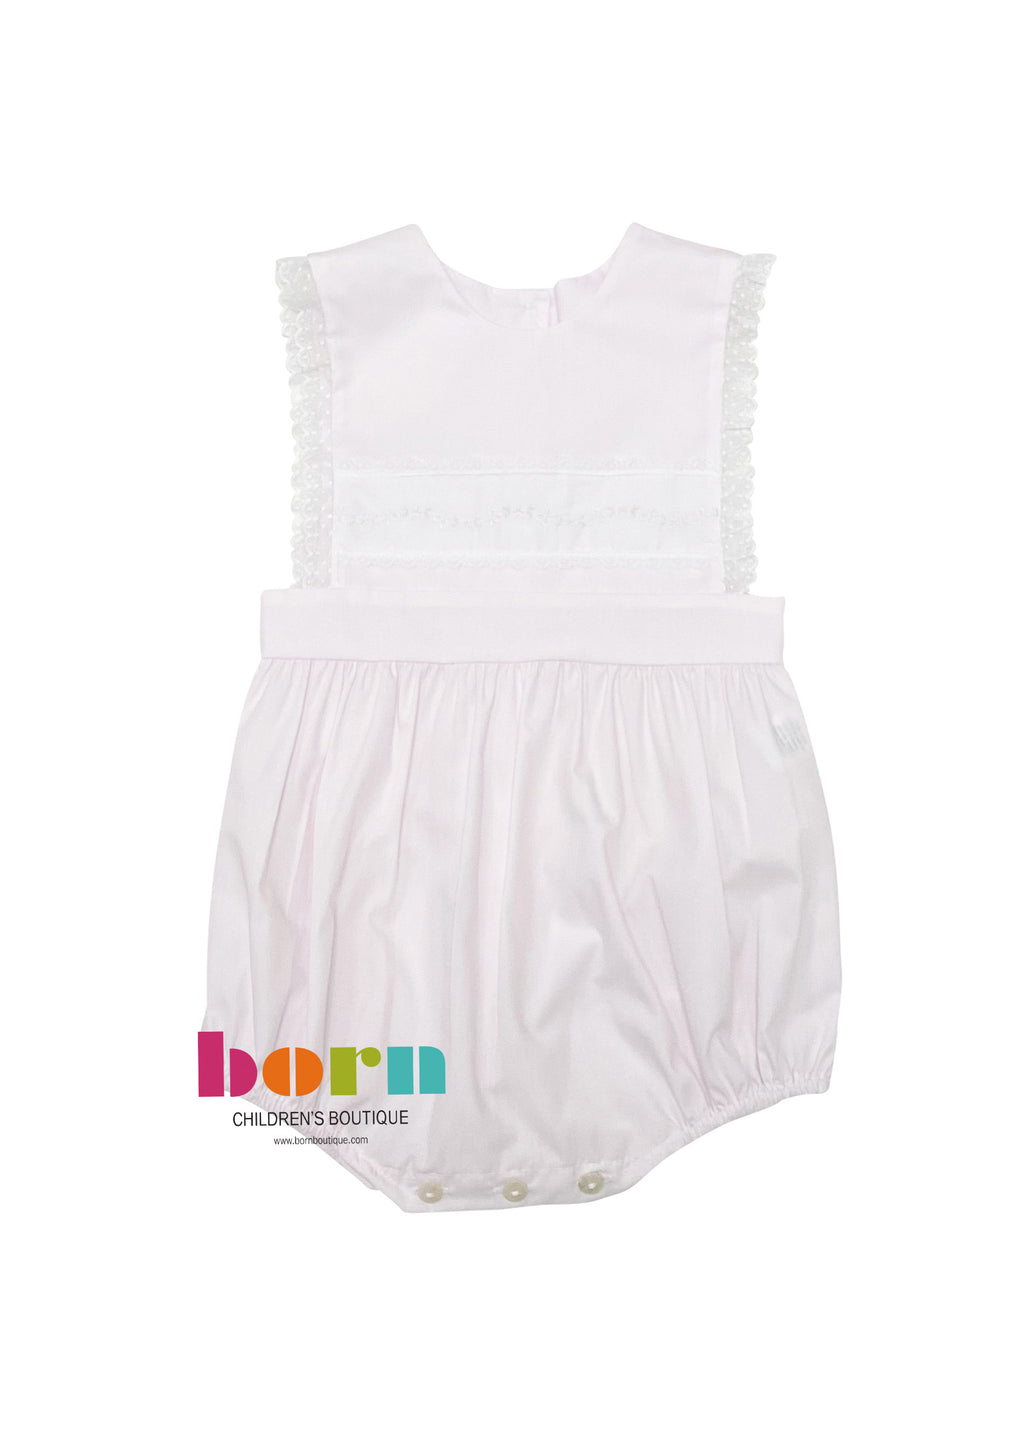 Heirloom Sleeveless Insert Bubble Pink with White - Born Childrens Boutique